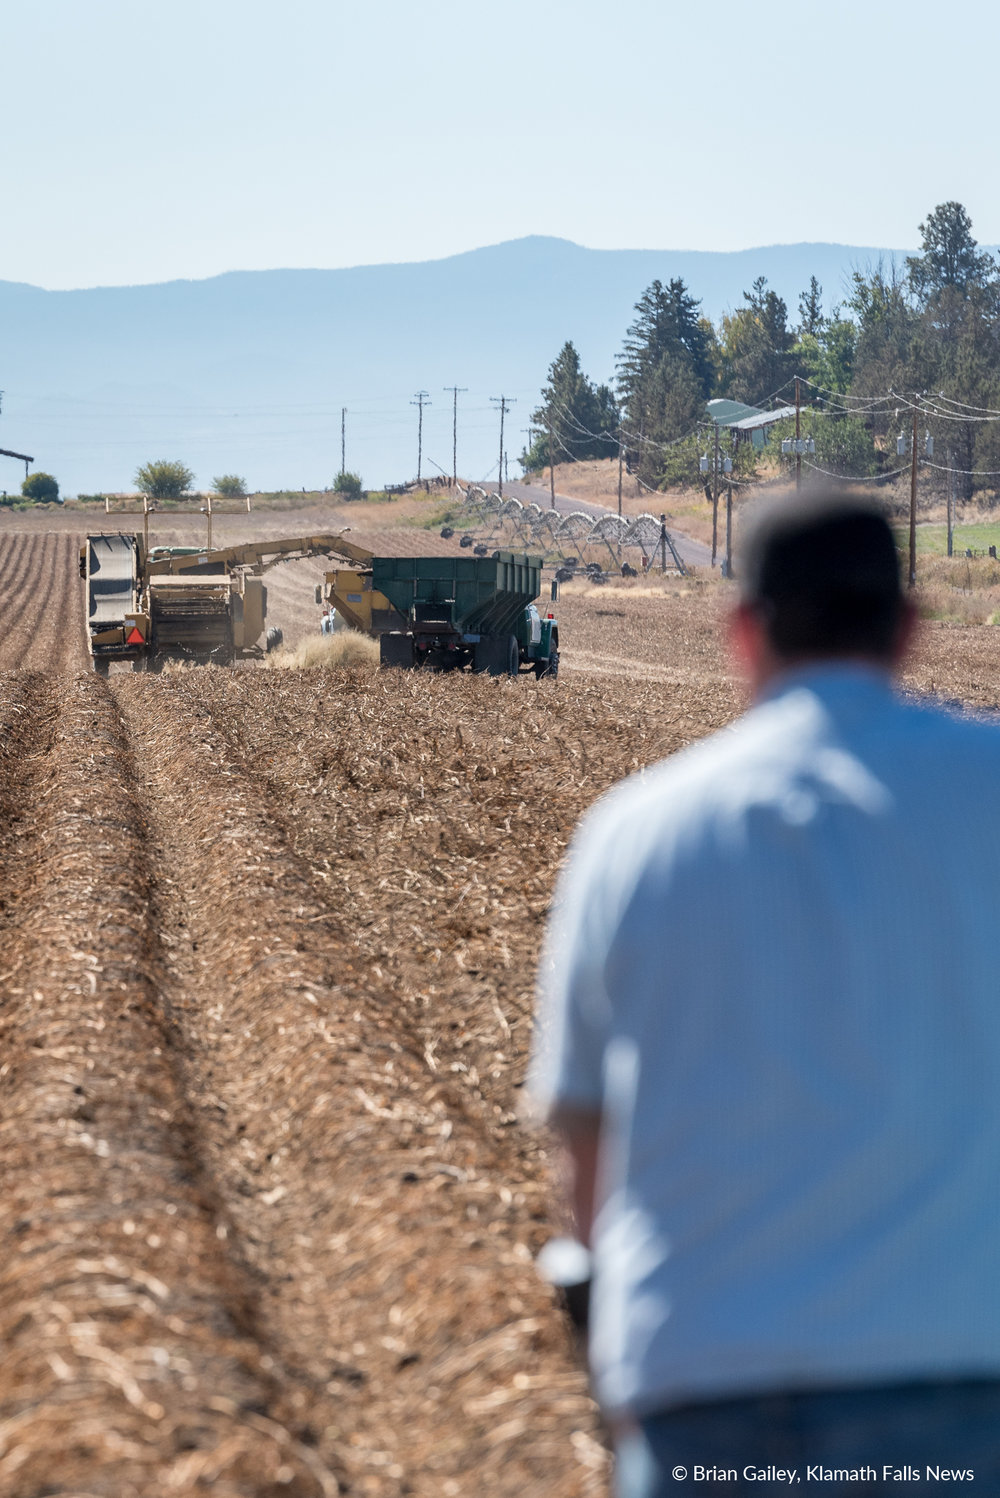 A farmer looks on as the harvester pulls potatoes from the ground. (Brian Gailey)